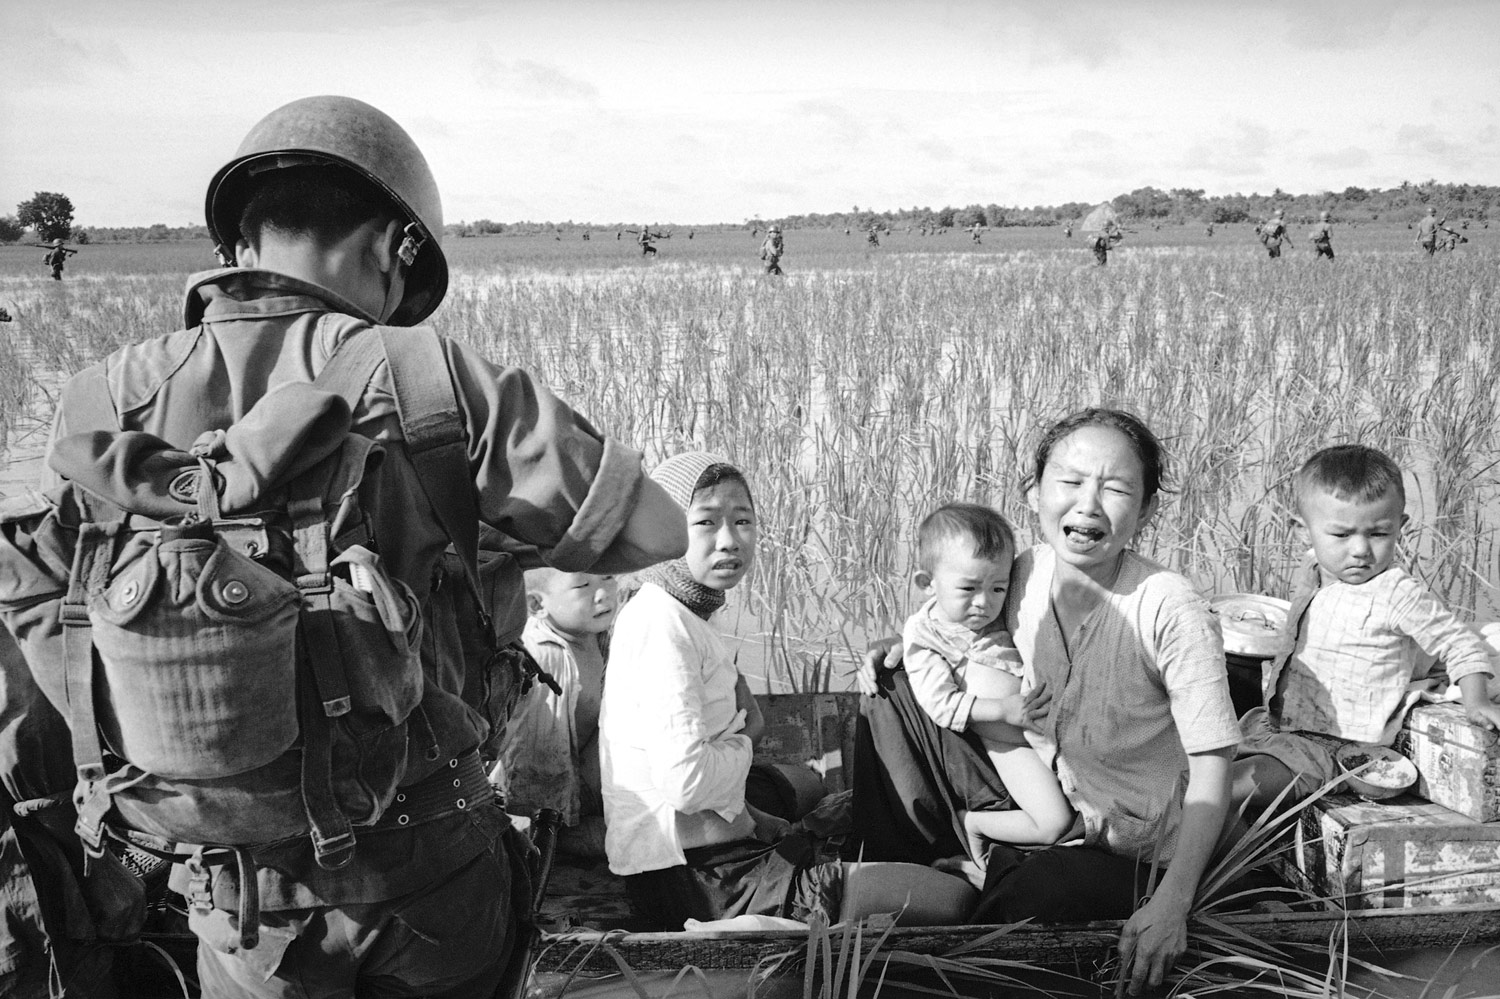 war photography essay A photo-essay is a set or series of photographs that are made to create series of emotions in the viewer a photo essay will often show pictures in deep emotional stages photo essays range from purely photographic works to photographs with captions or small comments to full text essays illustrated with photogr.